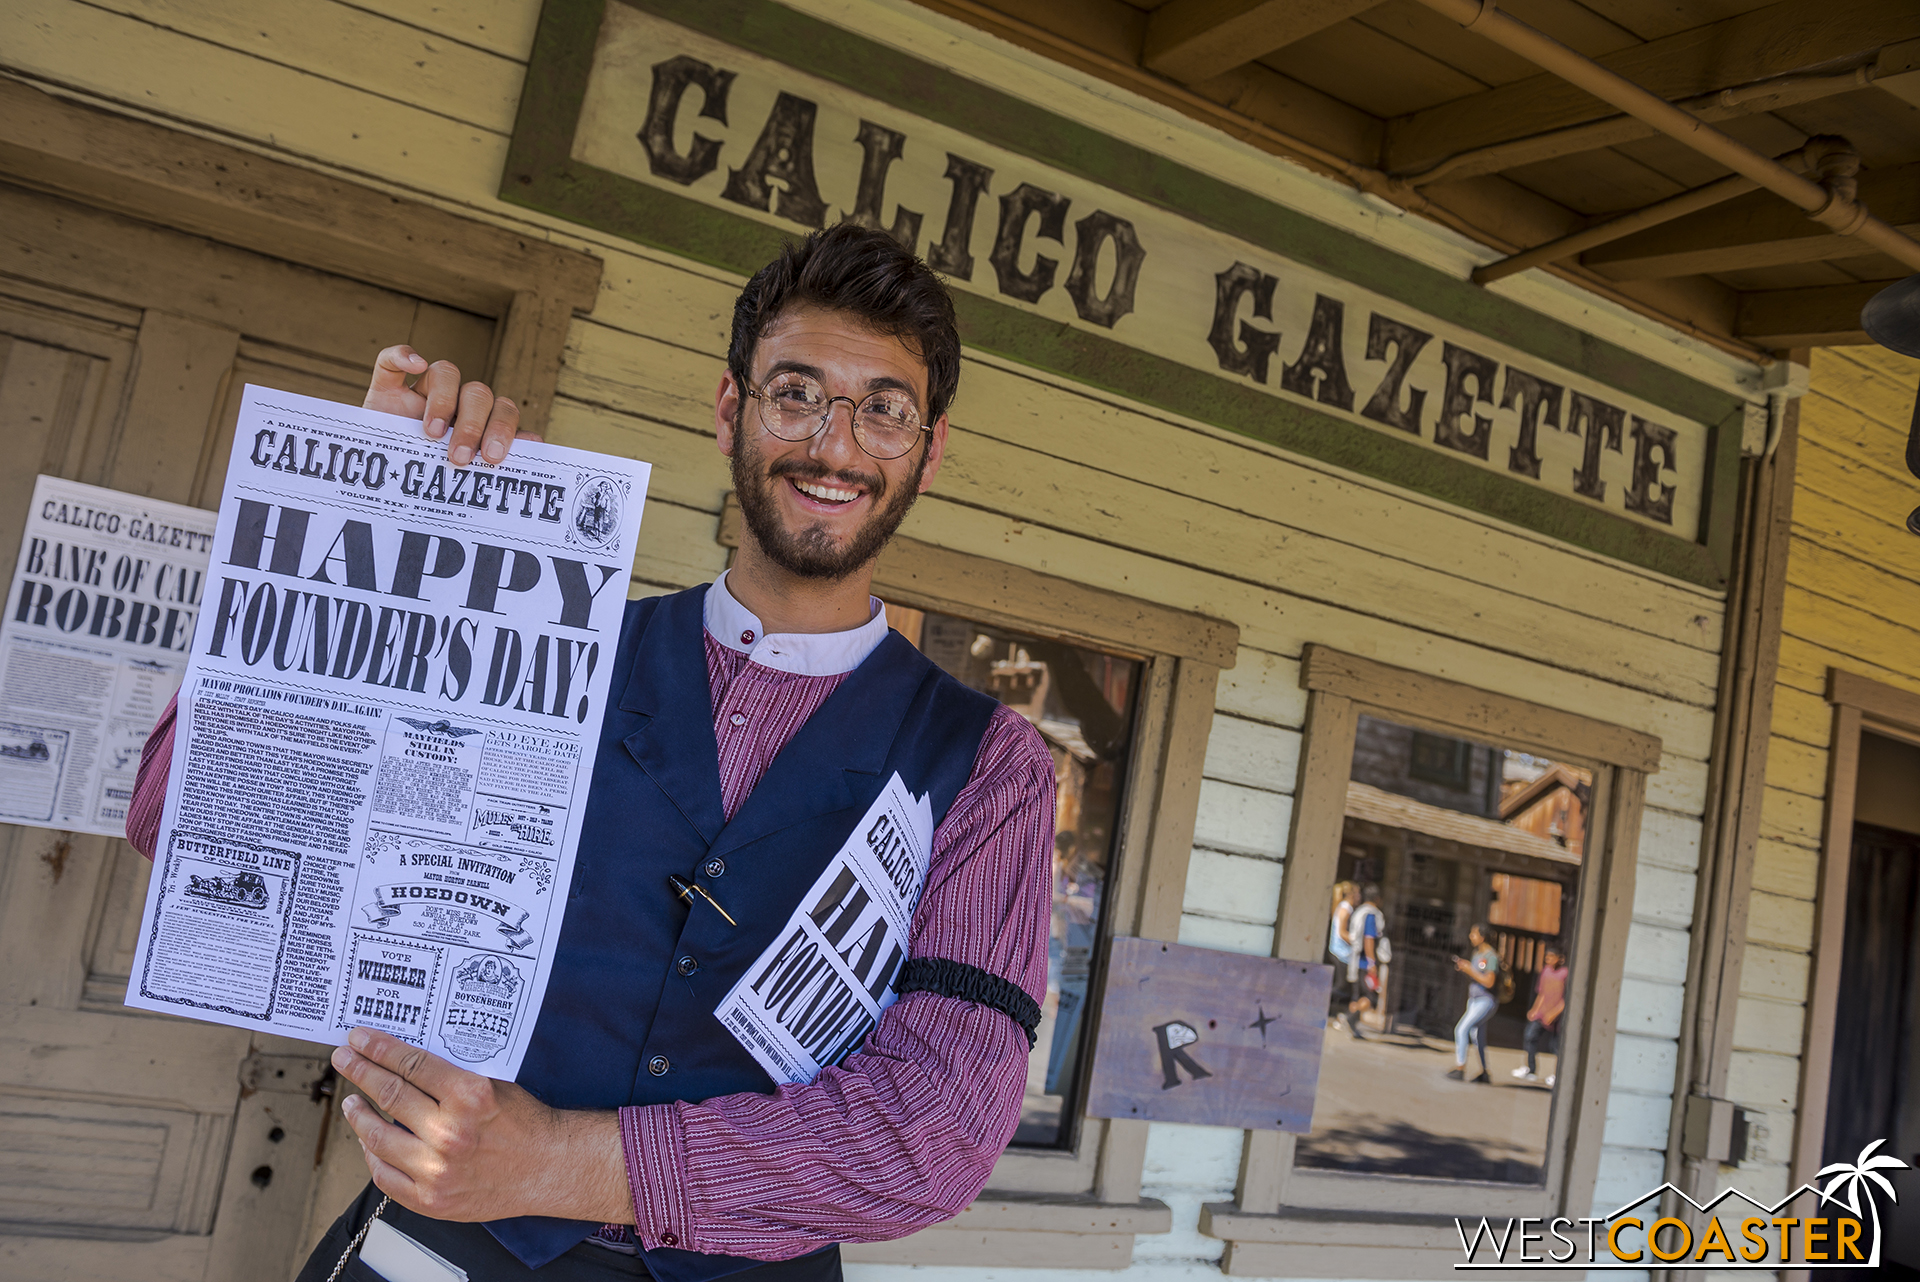 Newspaper editor Bixby Knolls holds up the latest edition of the Calico Gazette, which makes multiple printings a day and even includes the names of some interacting guests.